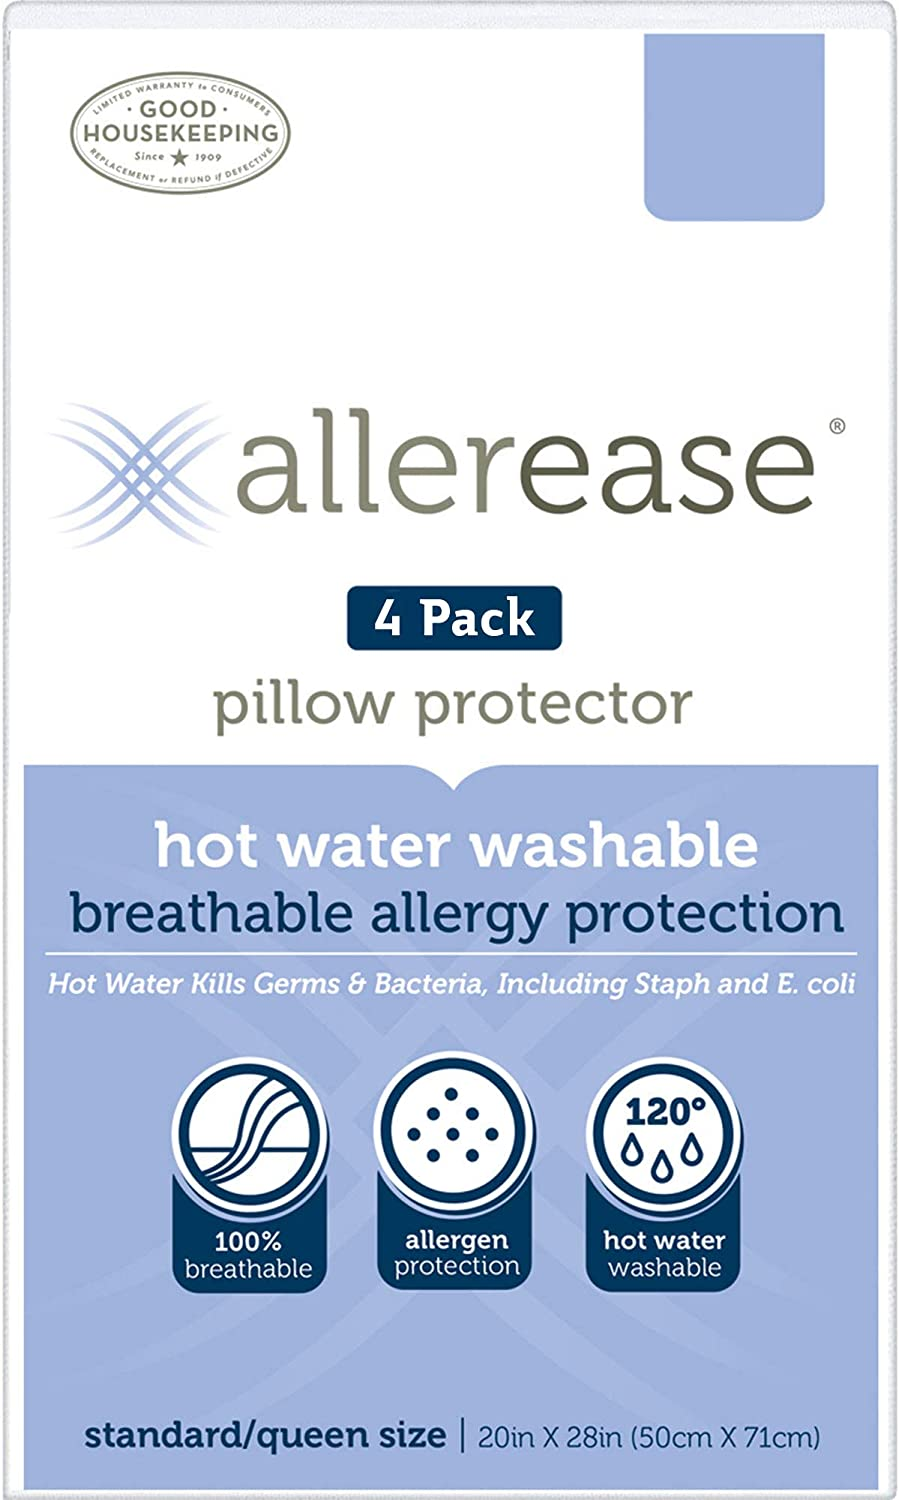 Aller-Ease Hot Water Washable Hypoallergenic Zippered Pillow Protectors, Allergist Recommended, Prevent Collection of Dust Mites and Other Allergens, King Sized, Pack of 4, 4 Pack, White